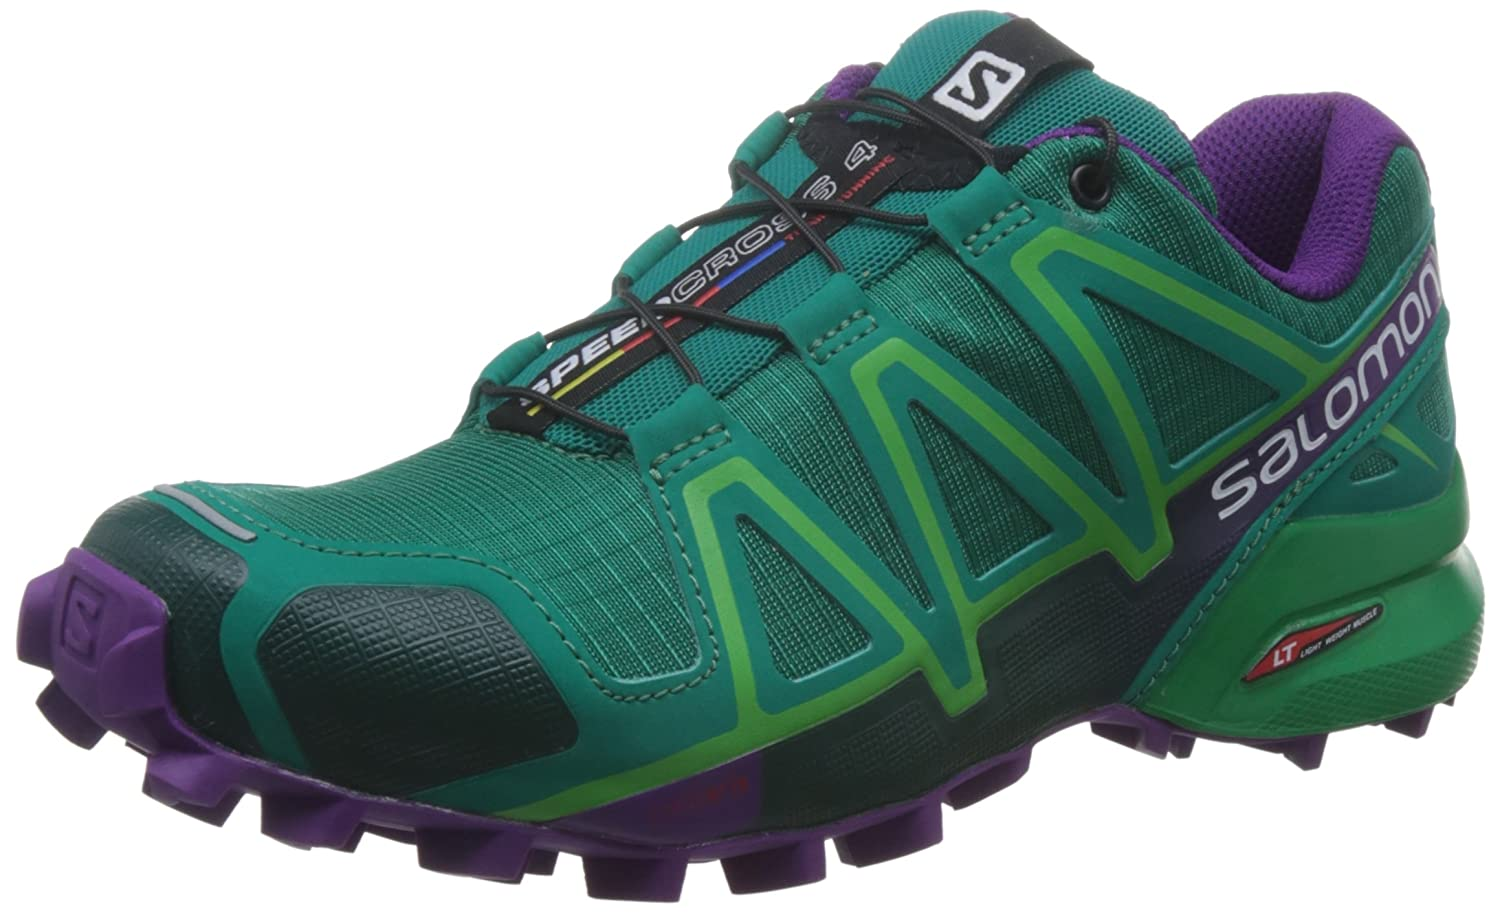 [サロモン] トレイルランニングシューズ X/Passion SPEEDCROSS US 4 W B017SR3YVE Green Veridian Green/Athletic Green X/Passion Purple 6.5 B(M) US 6.5 B(M) US|Veridian Green/Athletic Green X/Passion Purple, アツタク:61c5c549 --- gselfie.in